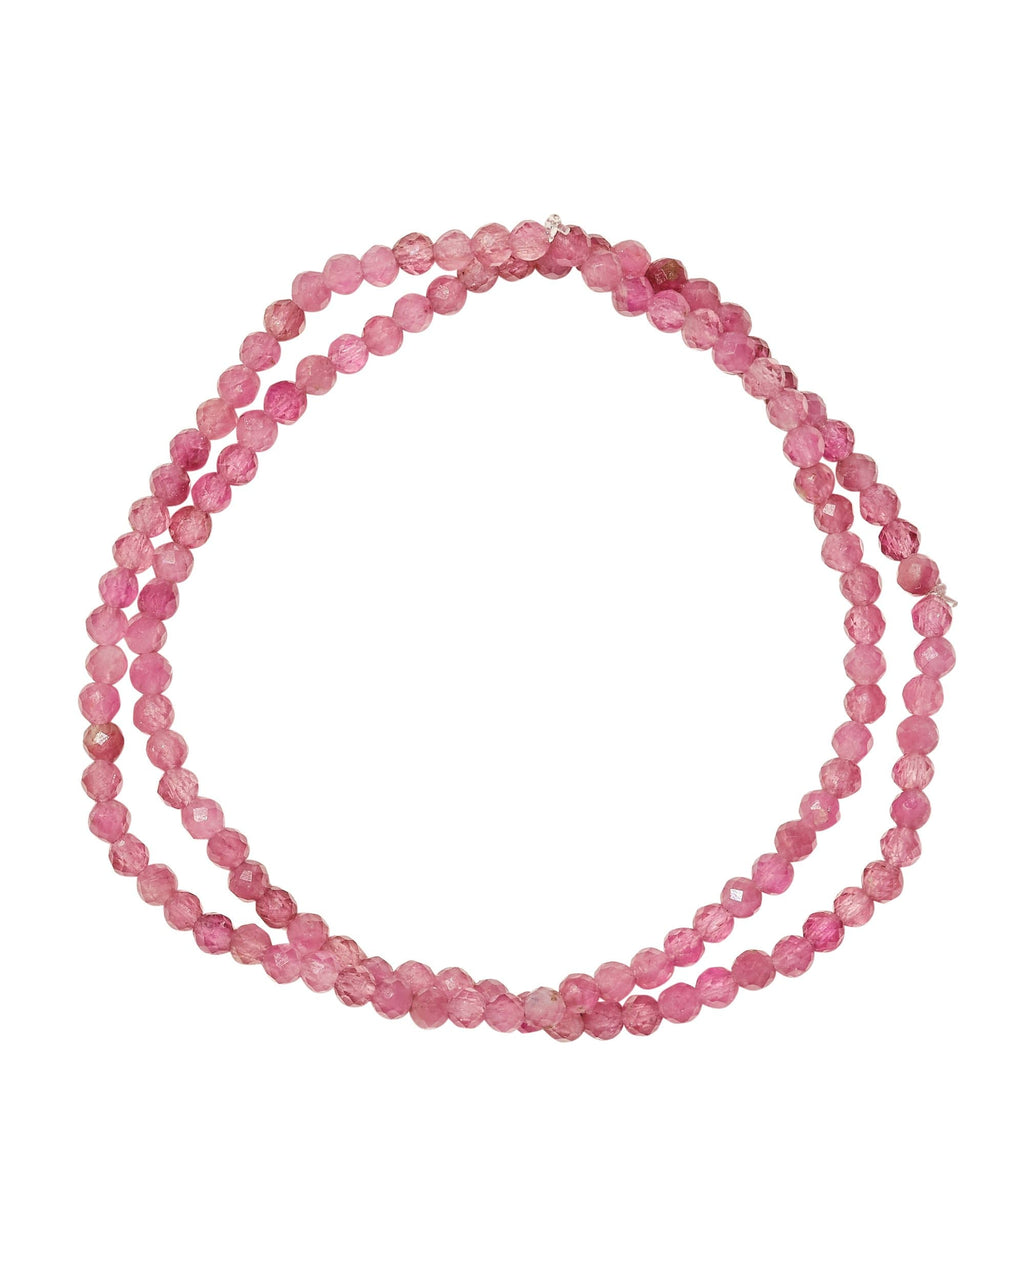 Pink Tourmaline AAA Faceted Stack - PRATT DADDY